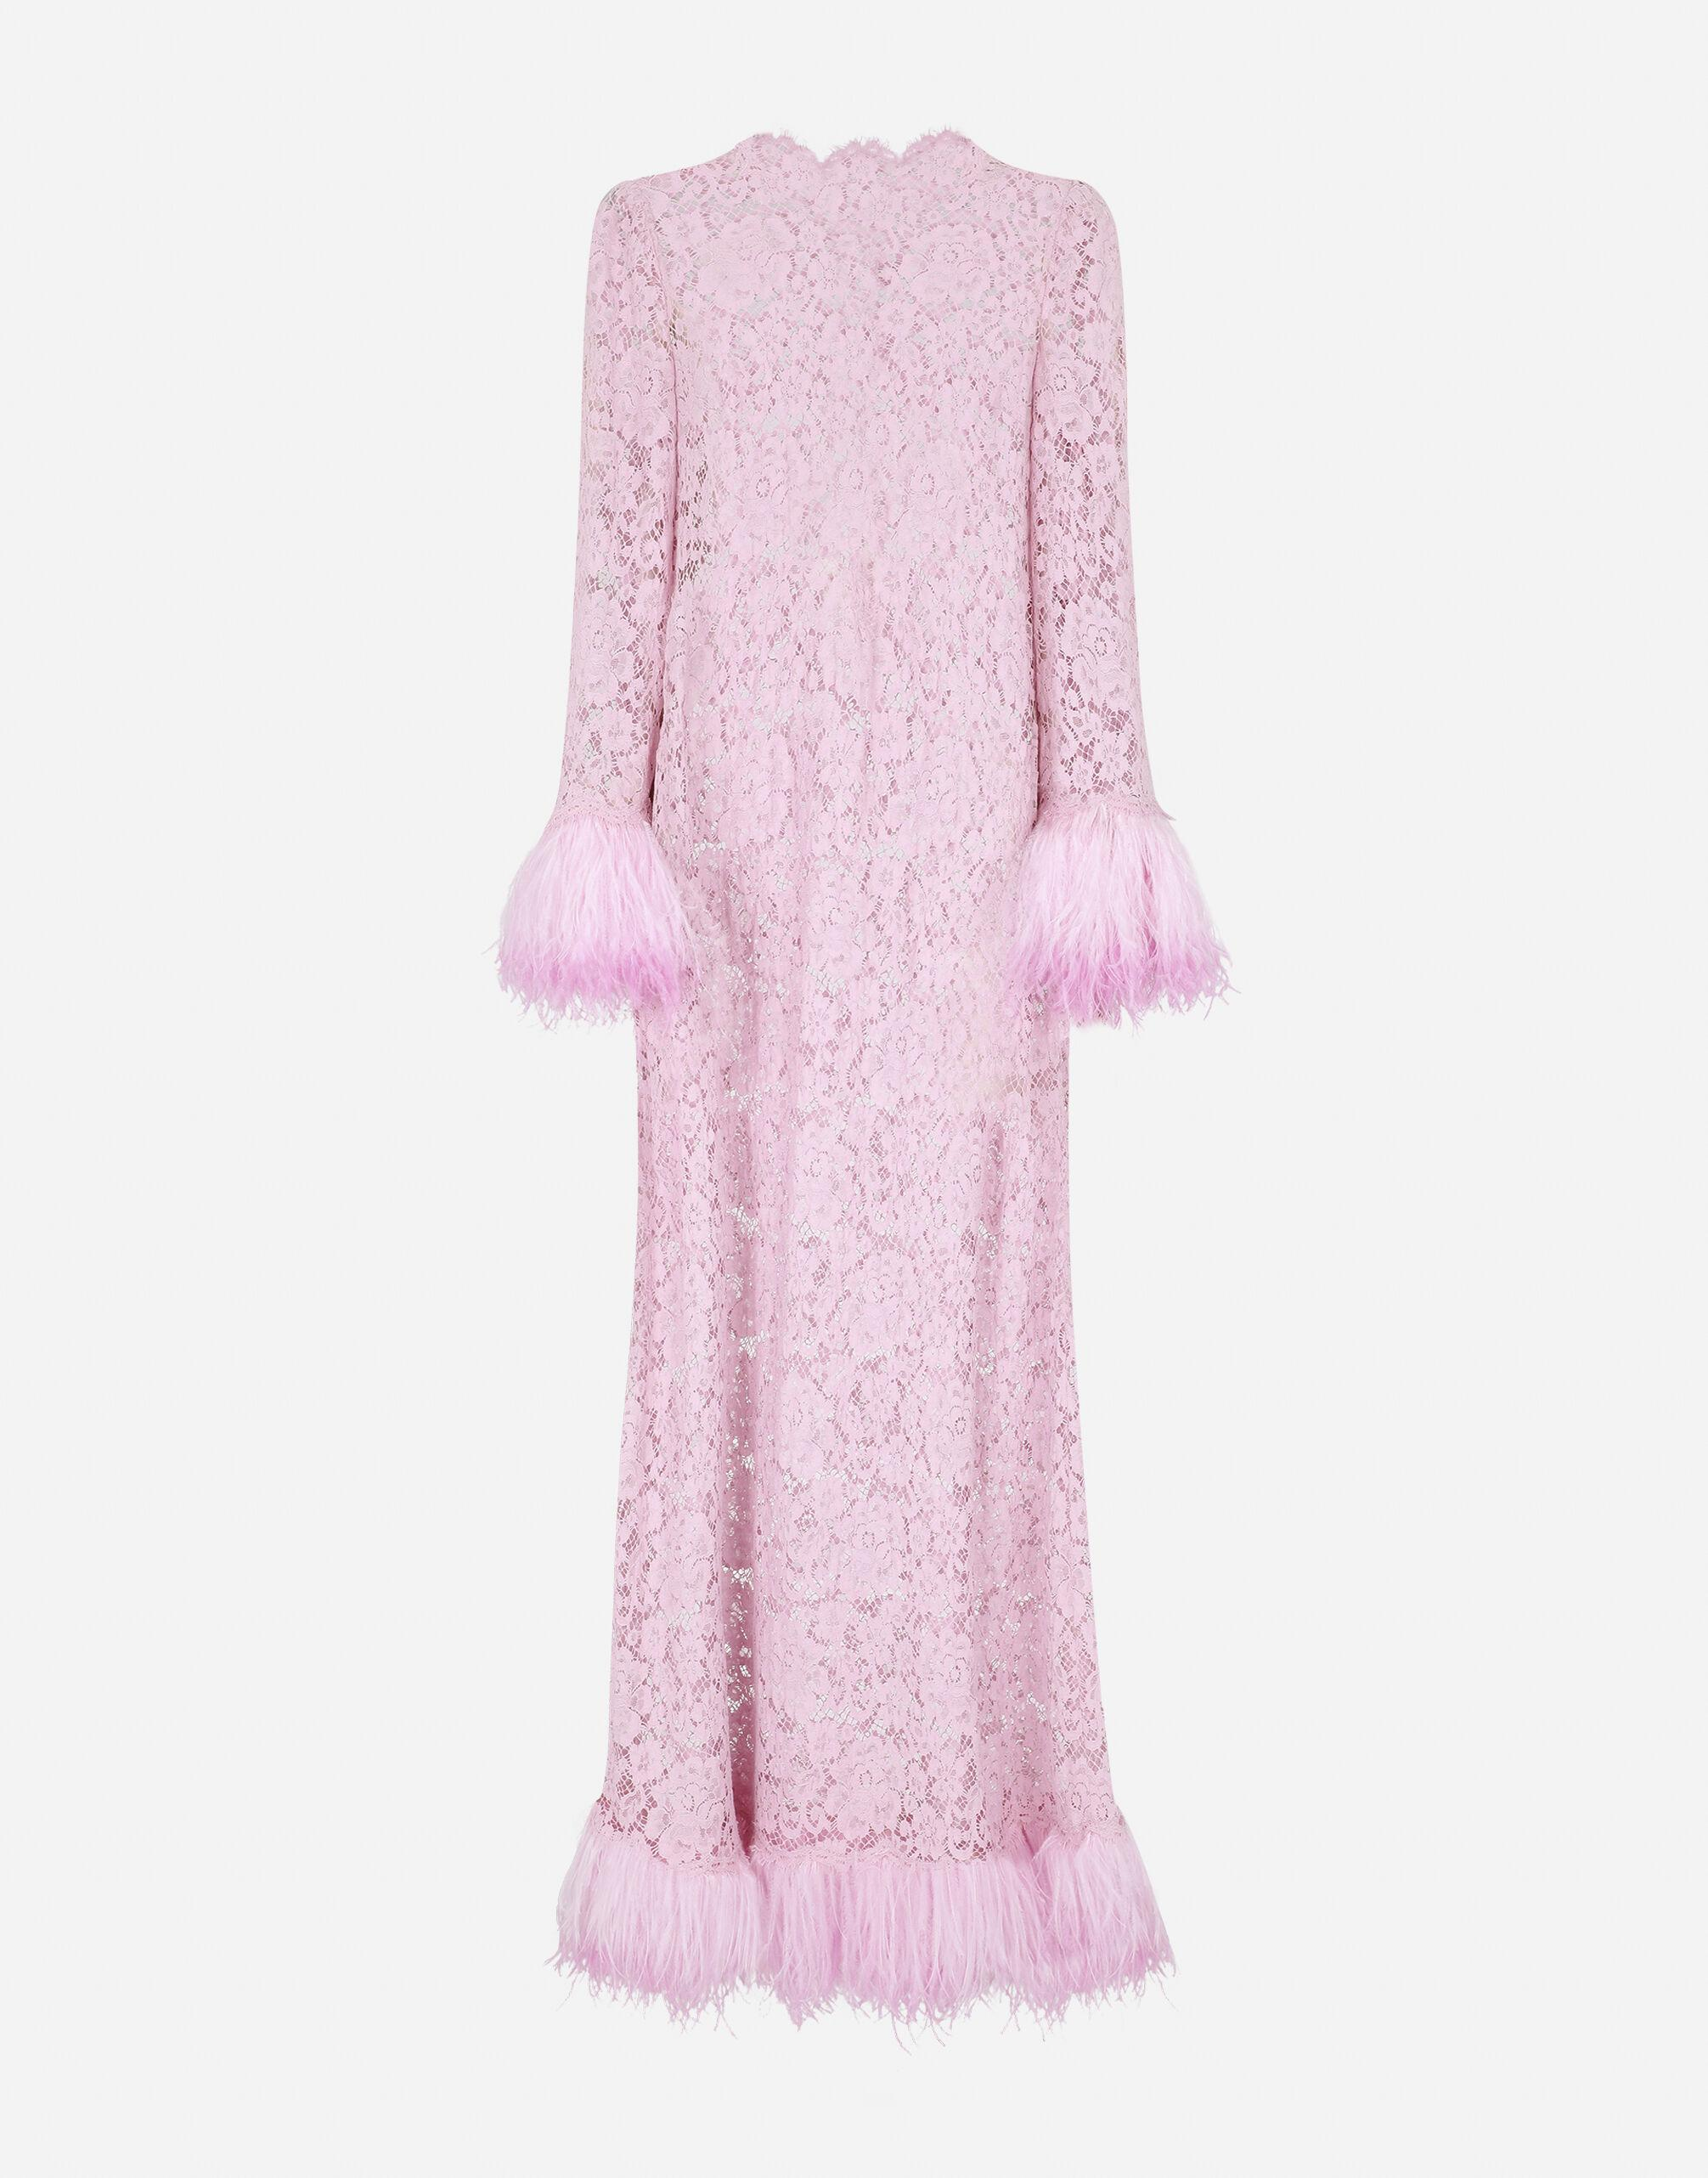 Lace caftan with marabou trim 5